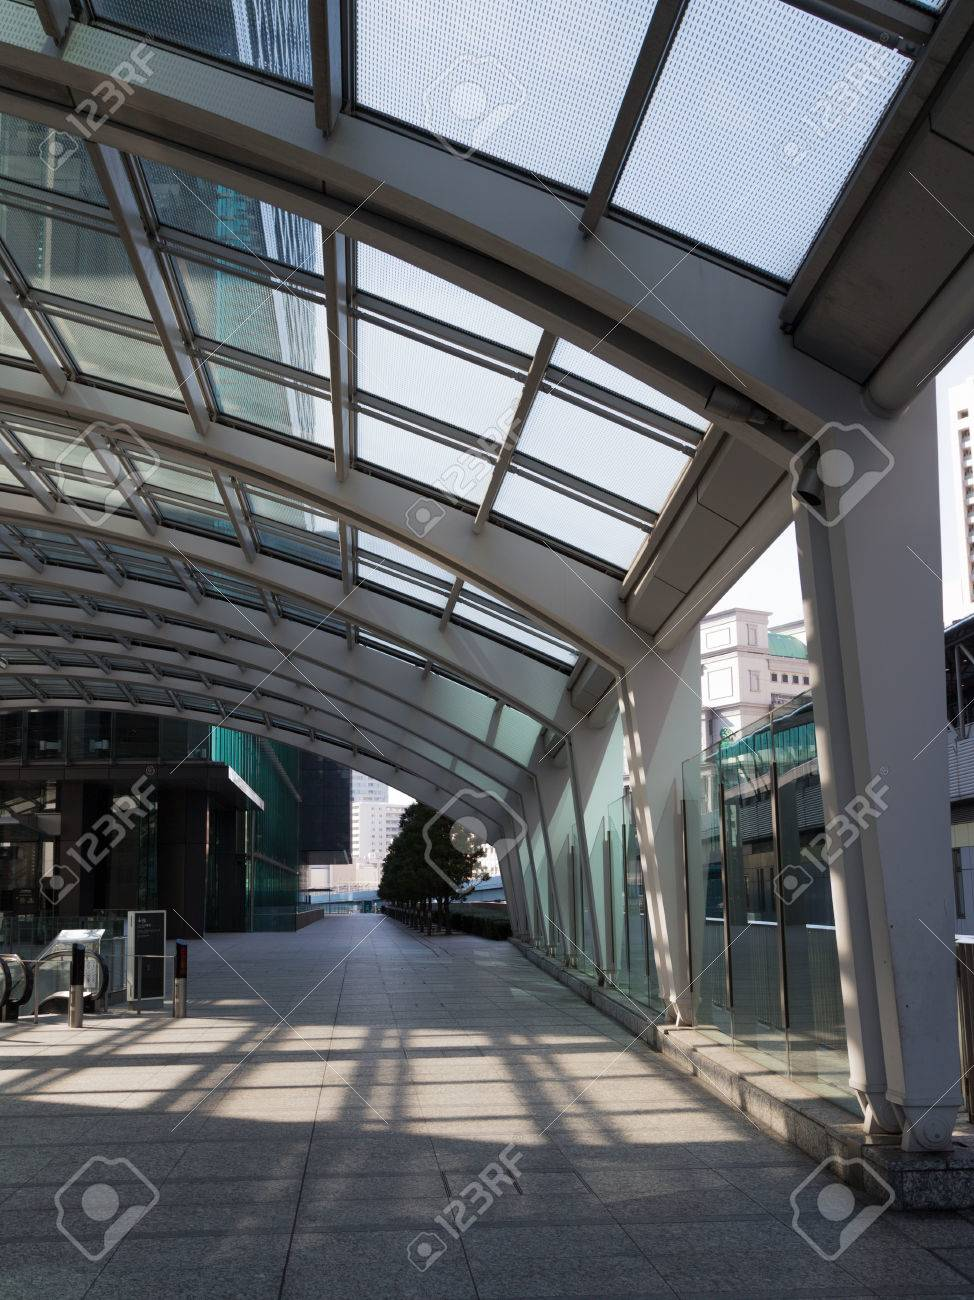 tokyo 4 february 2015 entrance to the subway and a large glass canopy with - Large Canopy 2015